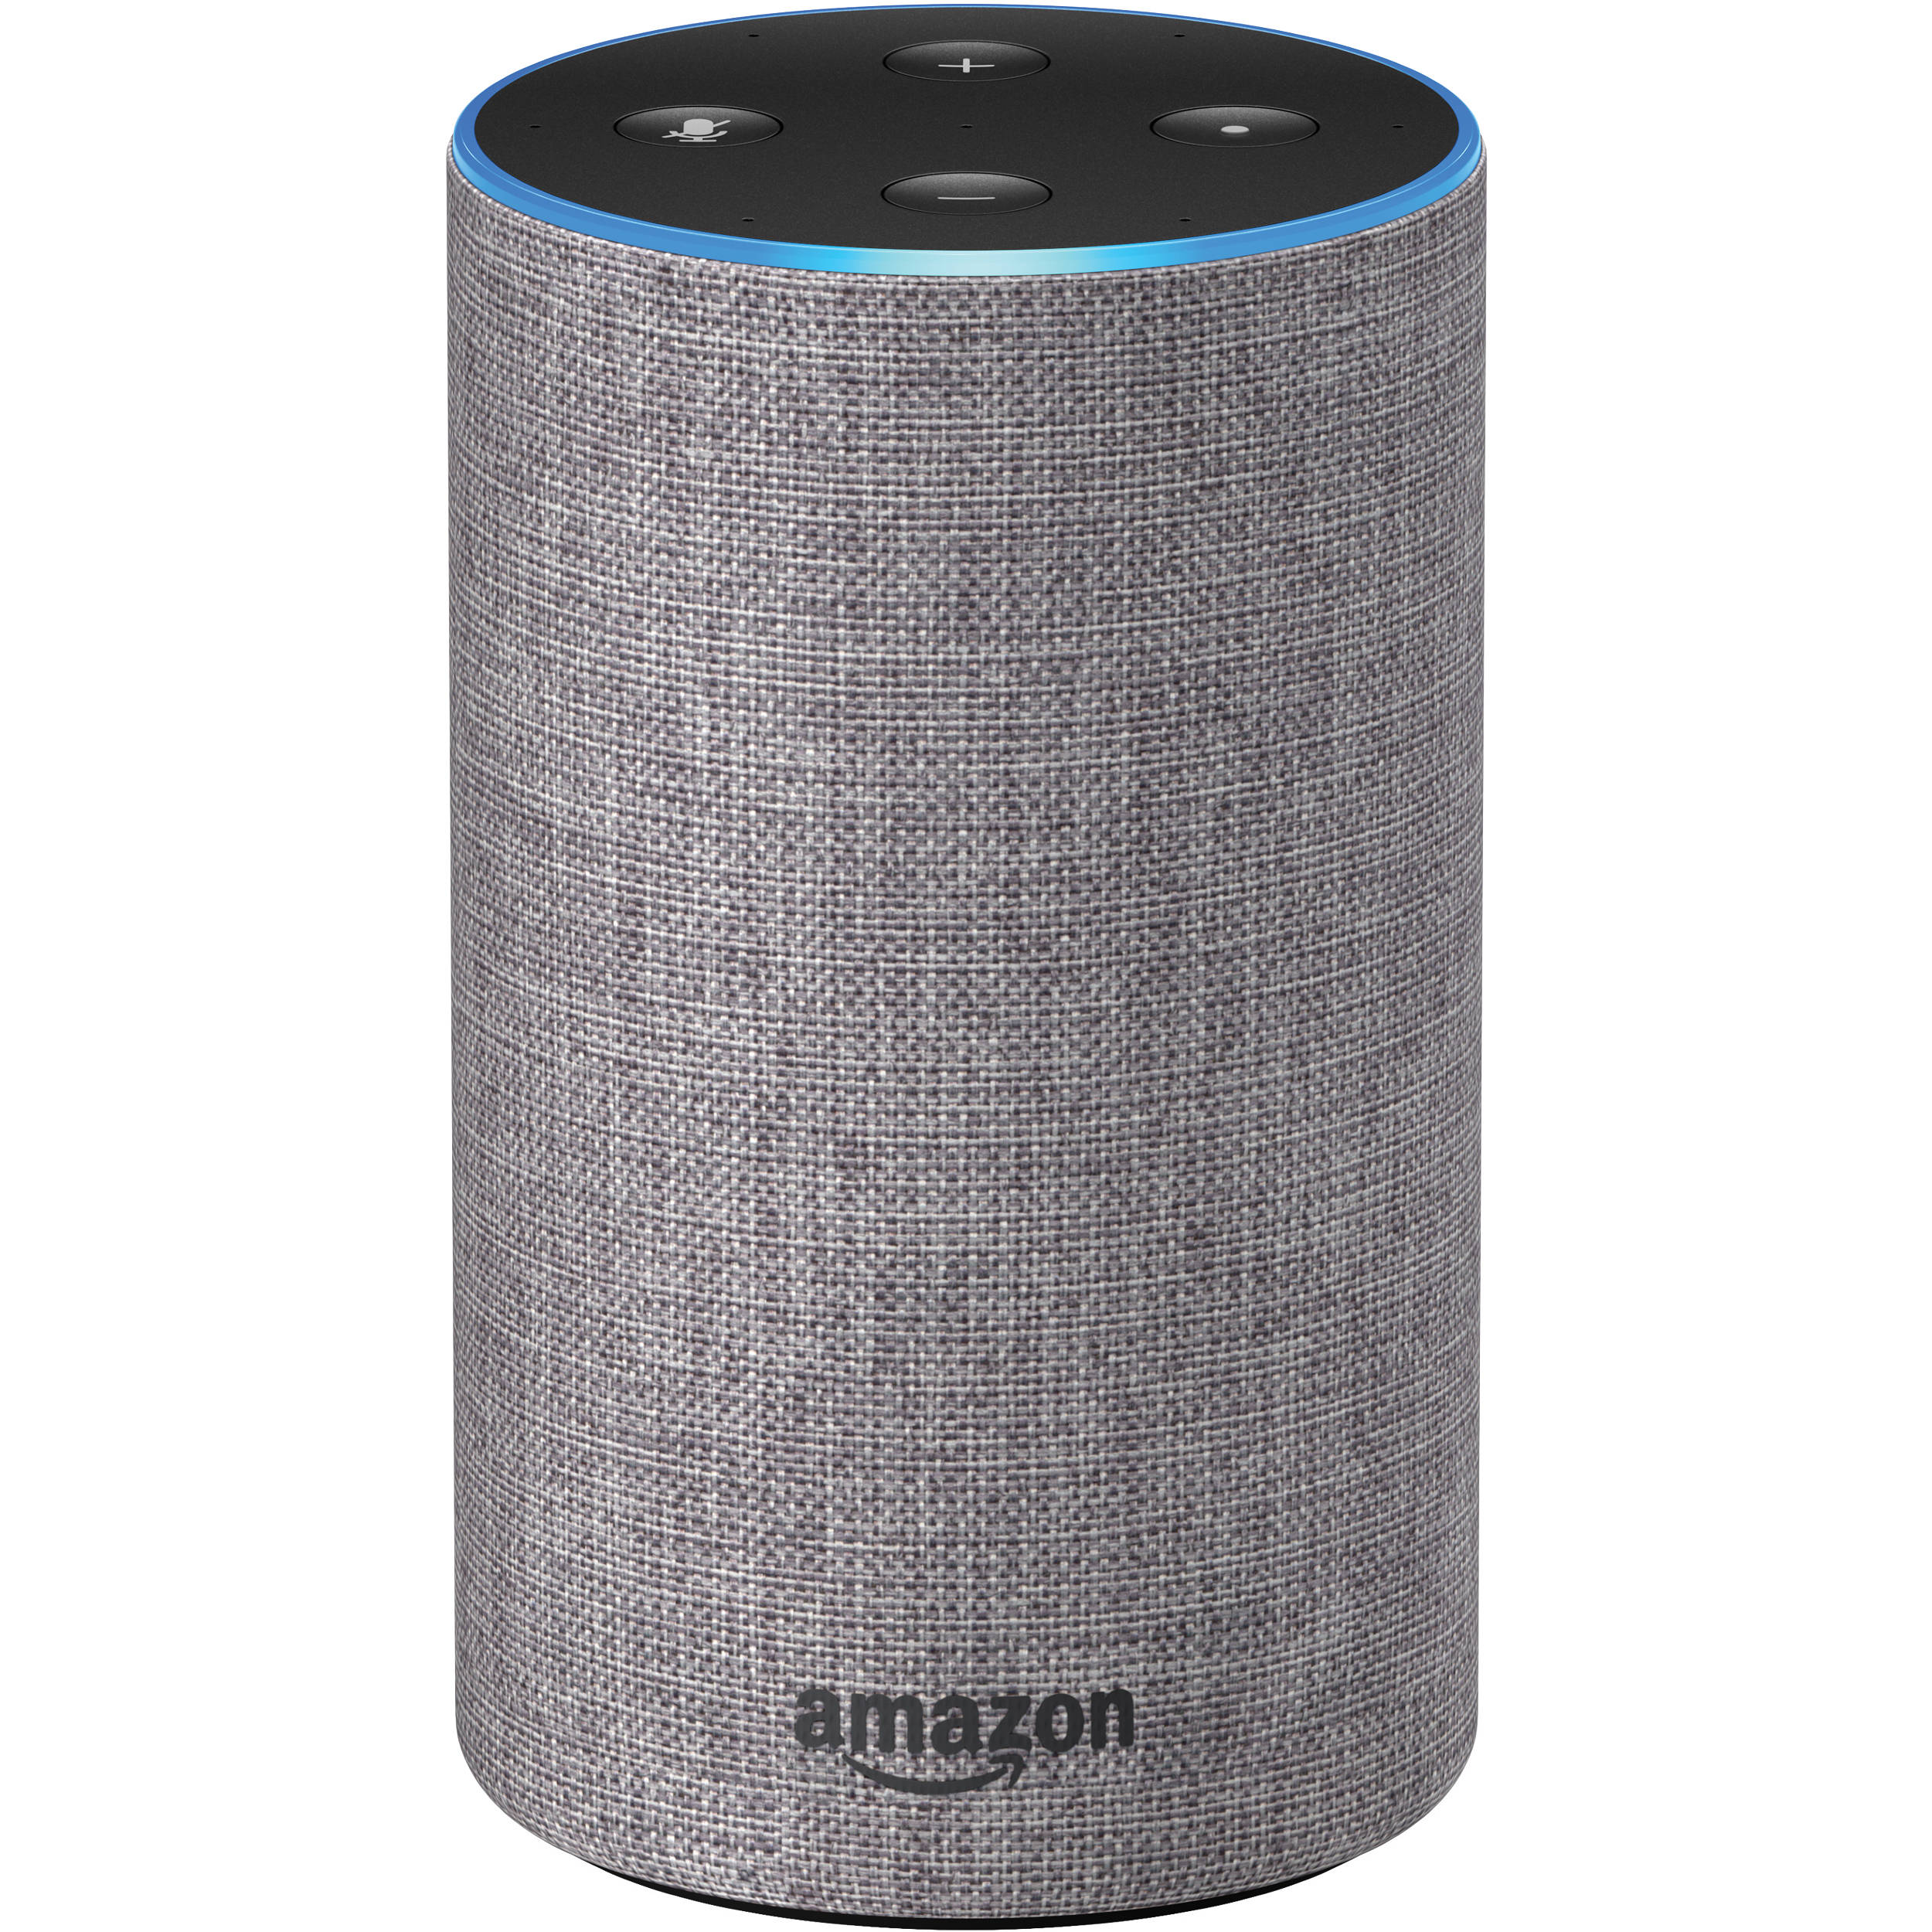 amazon echo 2nd generation heather gray fabric. Black Bedroom Furniture Sets. Home Design Ideas